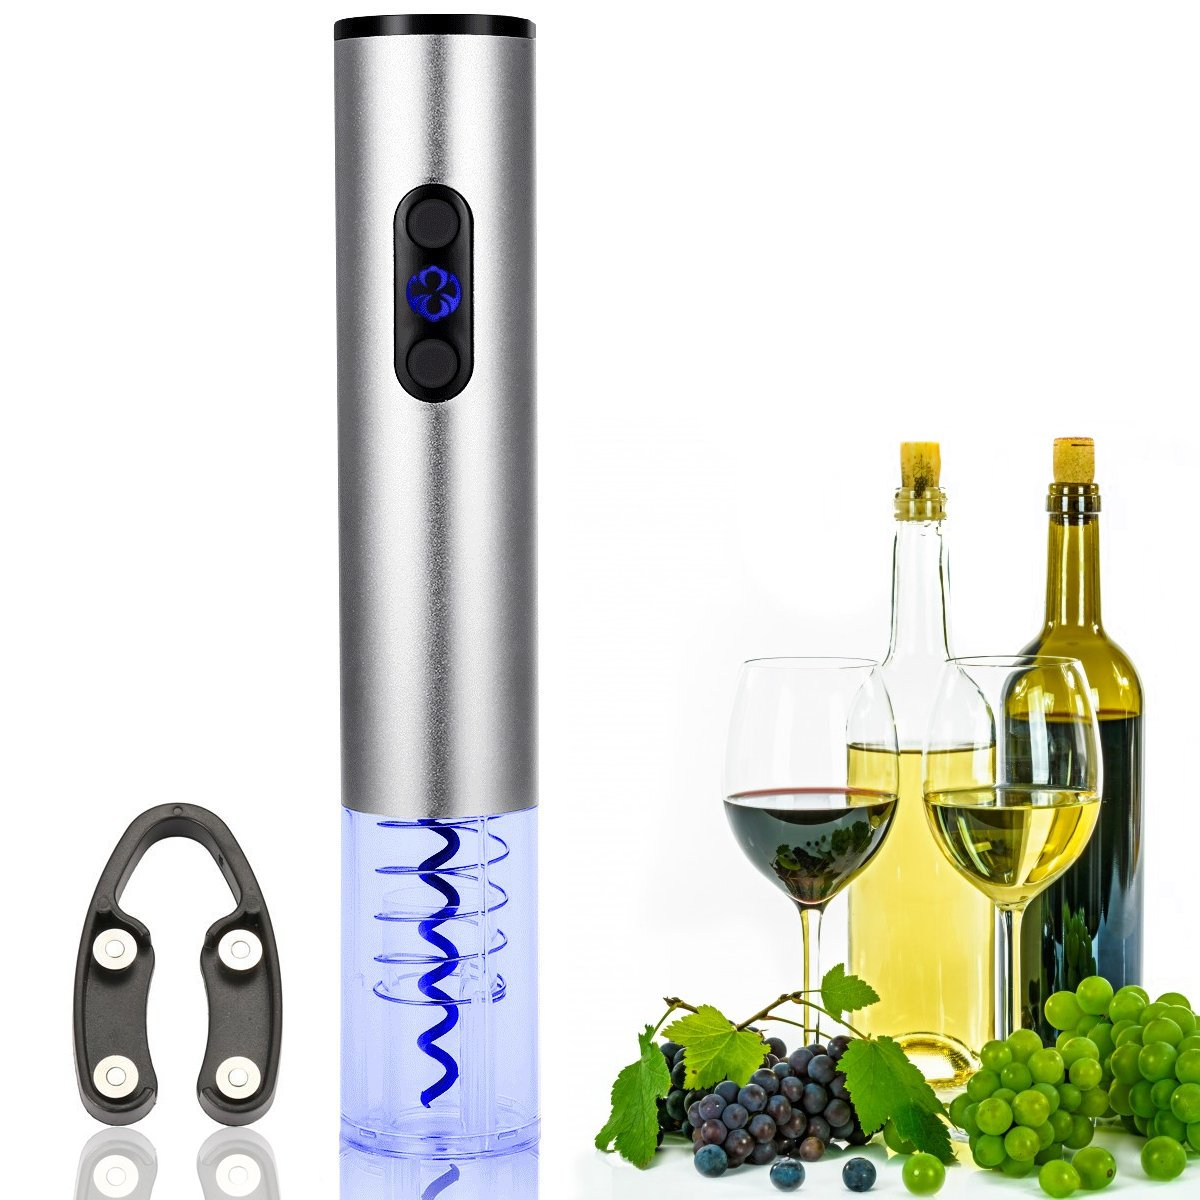 Godmorn Electric Wine Opener with Foil Cutter,Electric Corkscrew and Foil Remover,Stainless Steel,Rechargeable 110/220,Full Power Up to 80 Times Opens Osxuefuw GODMORNgjdklaks85